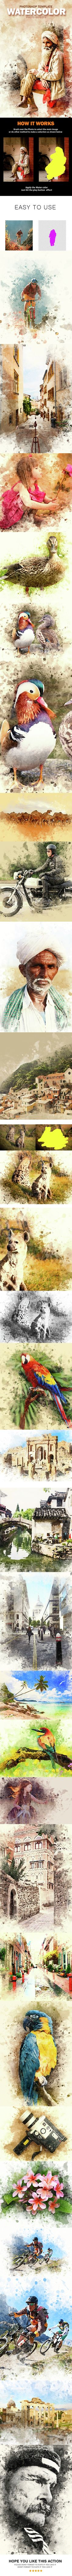 Watercolor Photoshop Action - Photoshop Add-ons Download: http://goo.gl/oByhsN